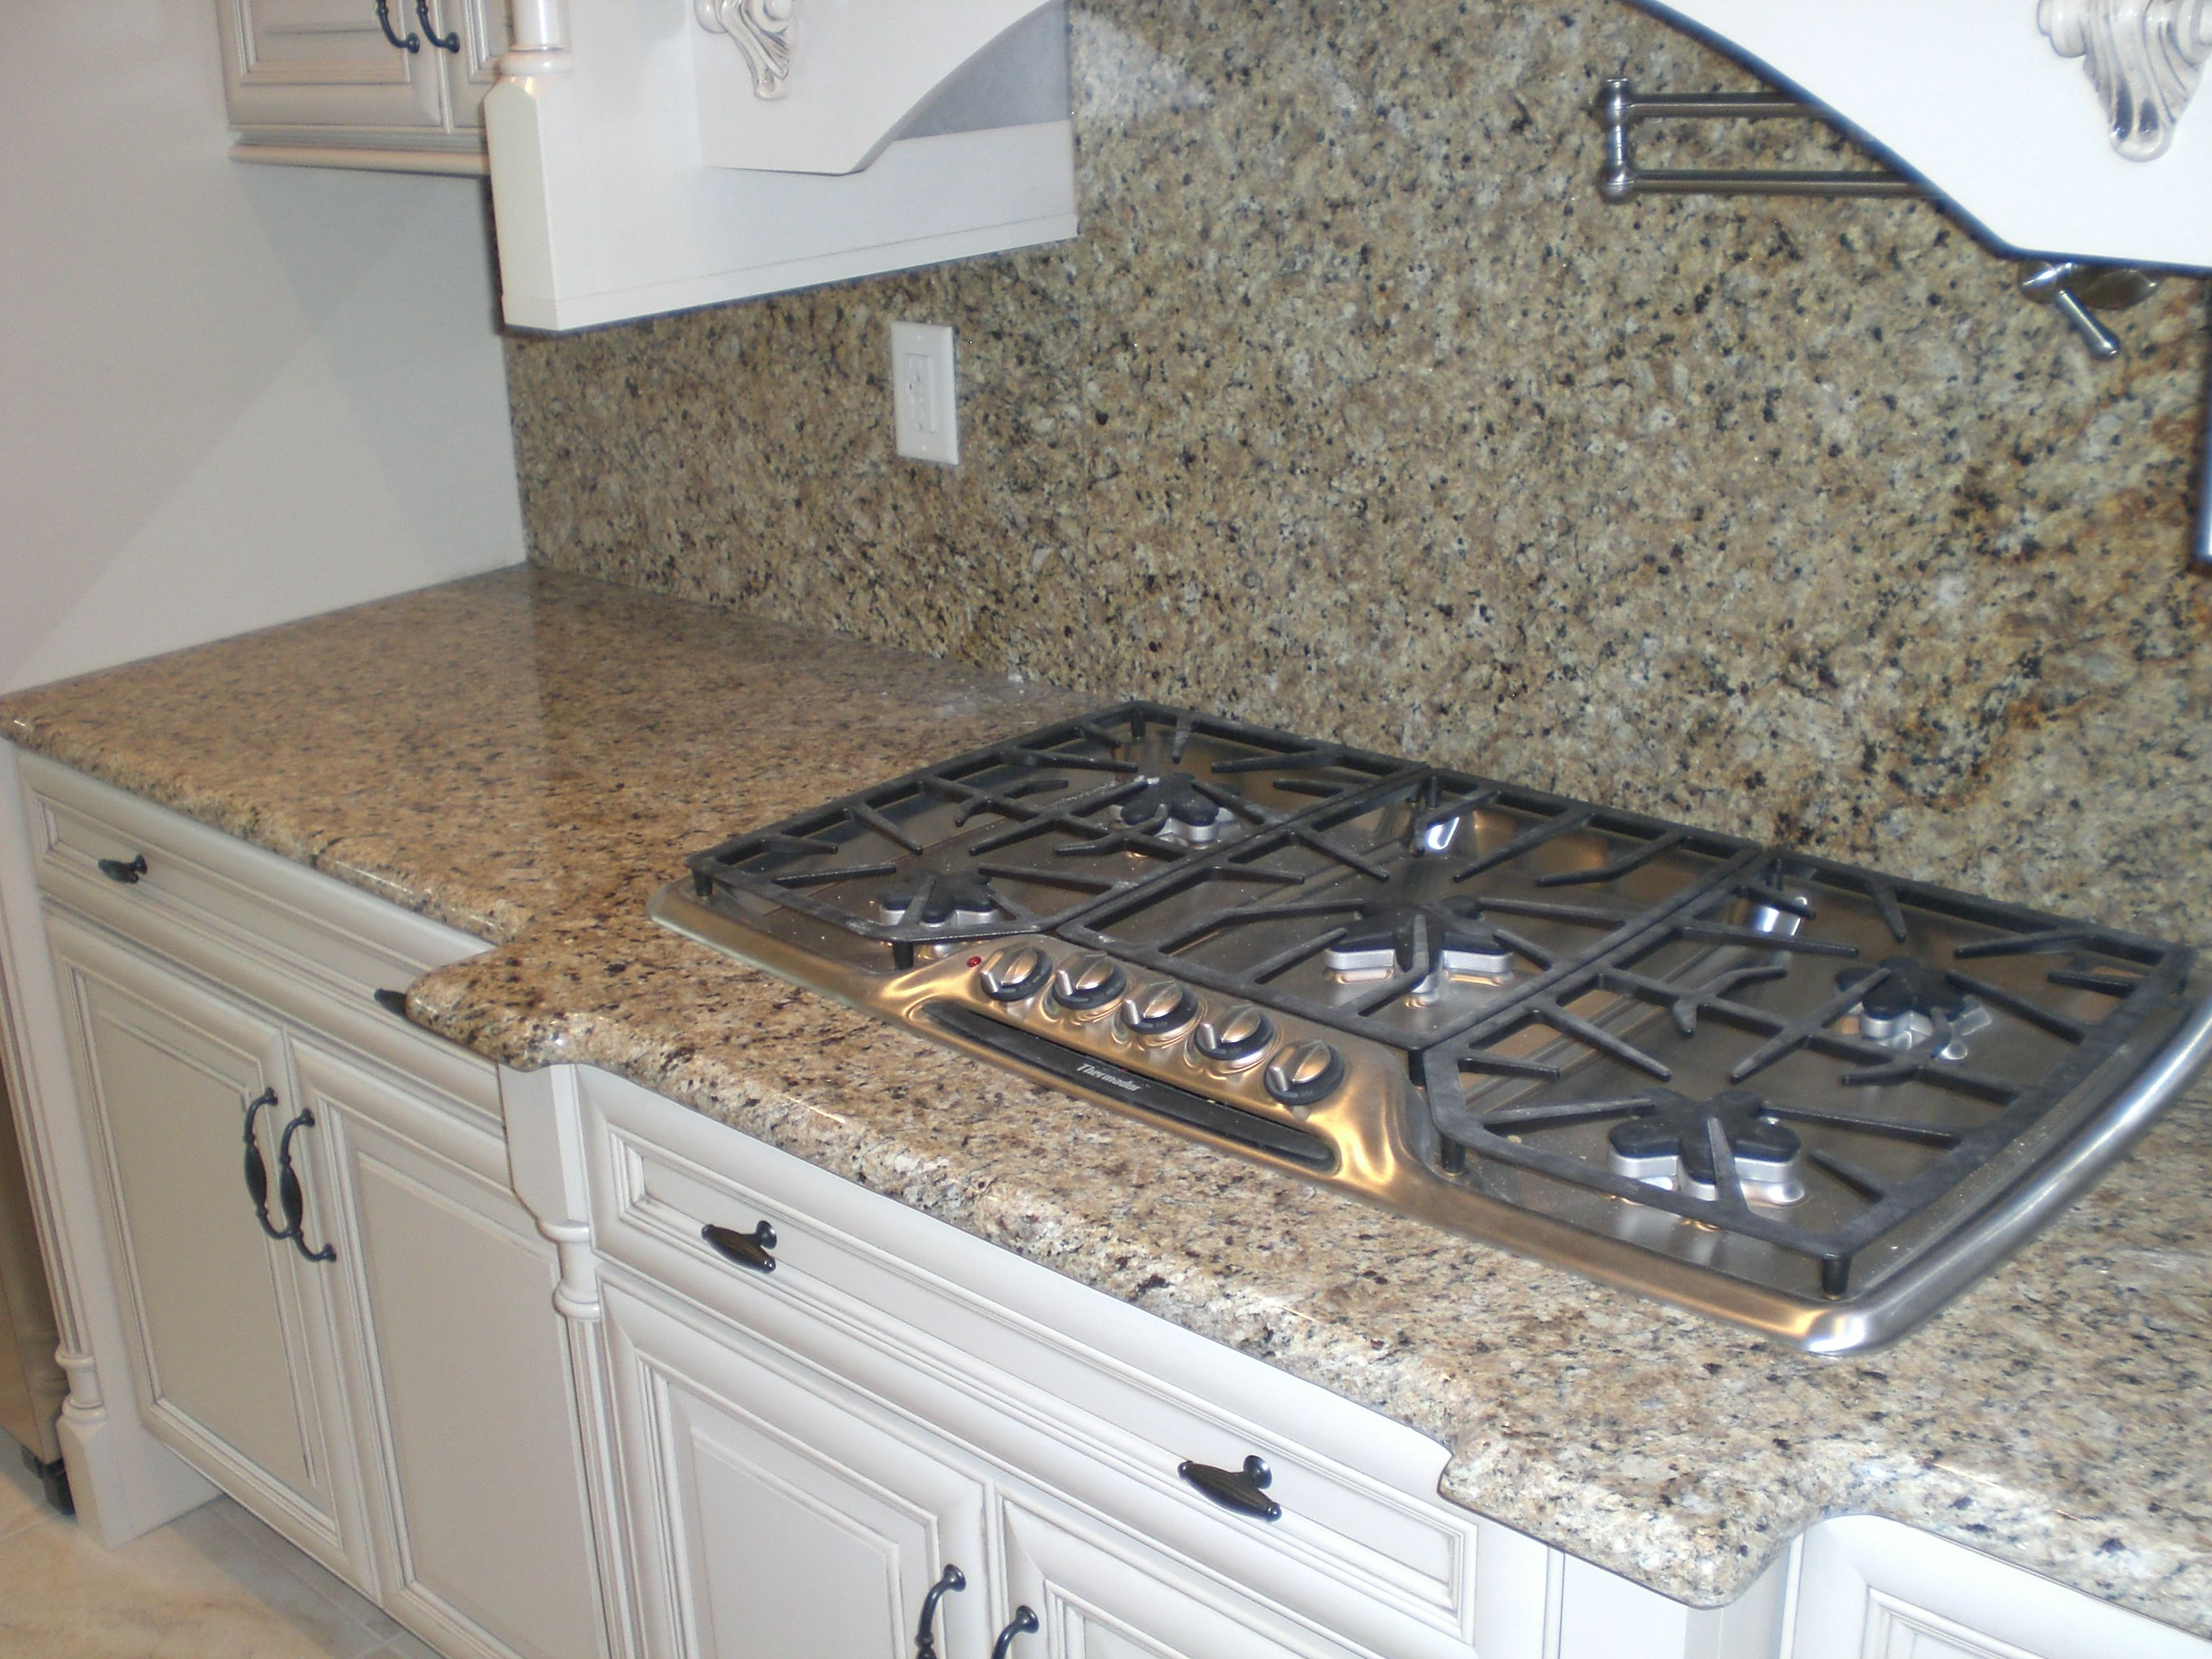 Shivakashi granite countertops slab and prices living rooms gallery - New Venetian Gold Countertops